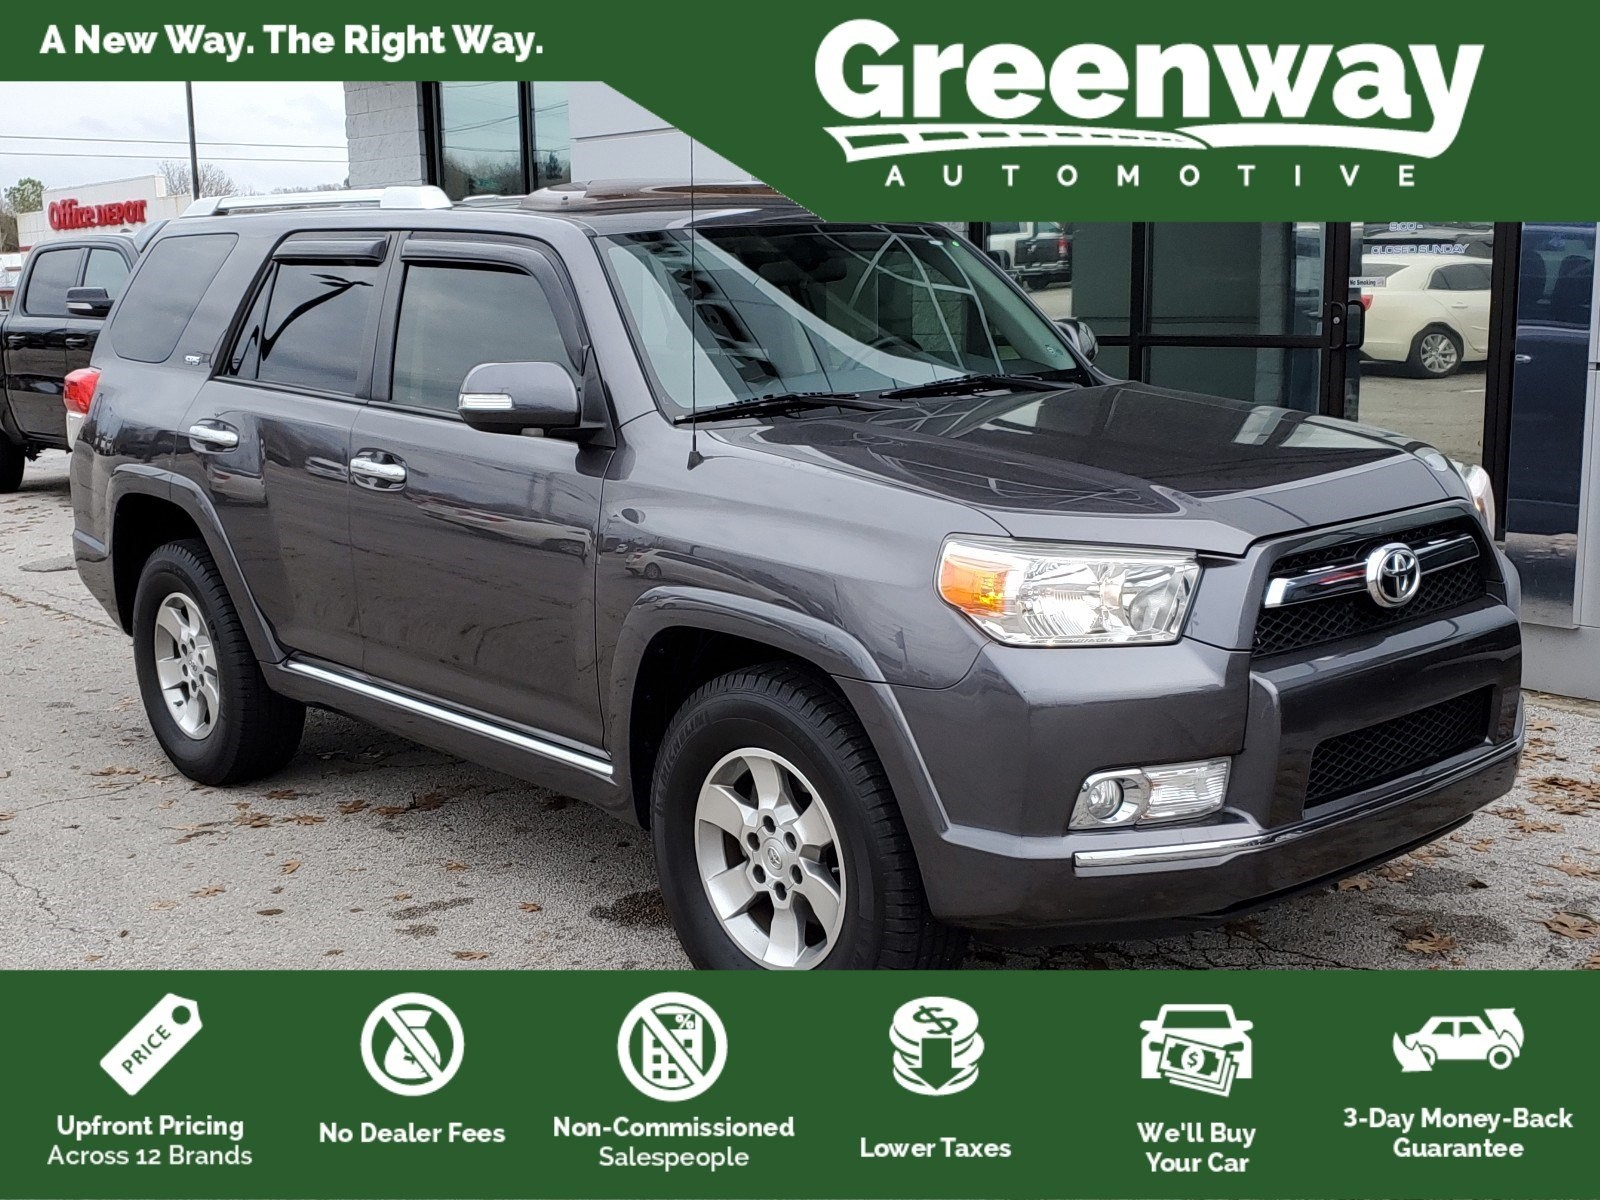 2006 toyota 4runner Parts Diagram Pre Owned 2013 toyota 4runner Sr5 with Navigation Of 2006 toyota 4runner Parts Diagram